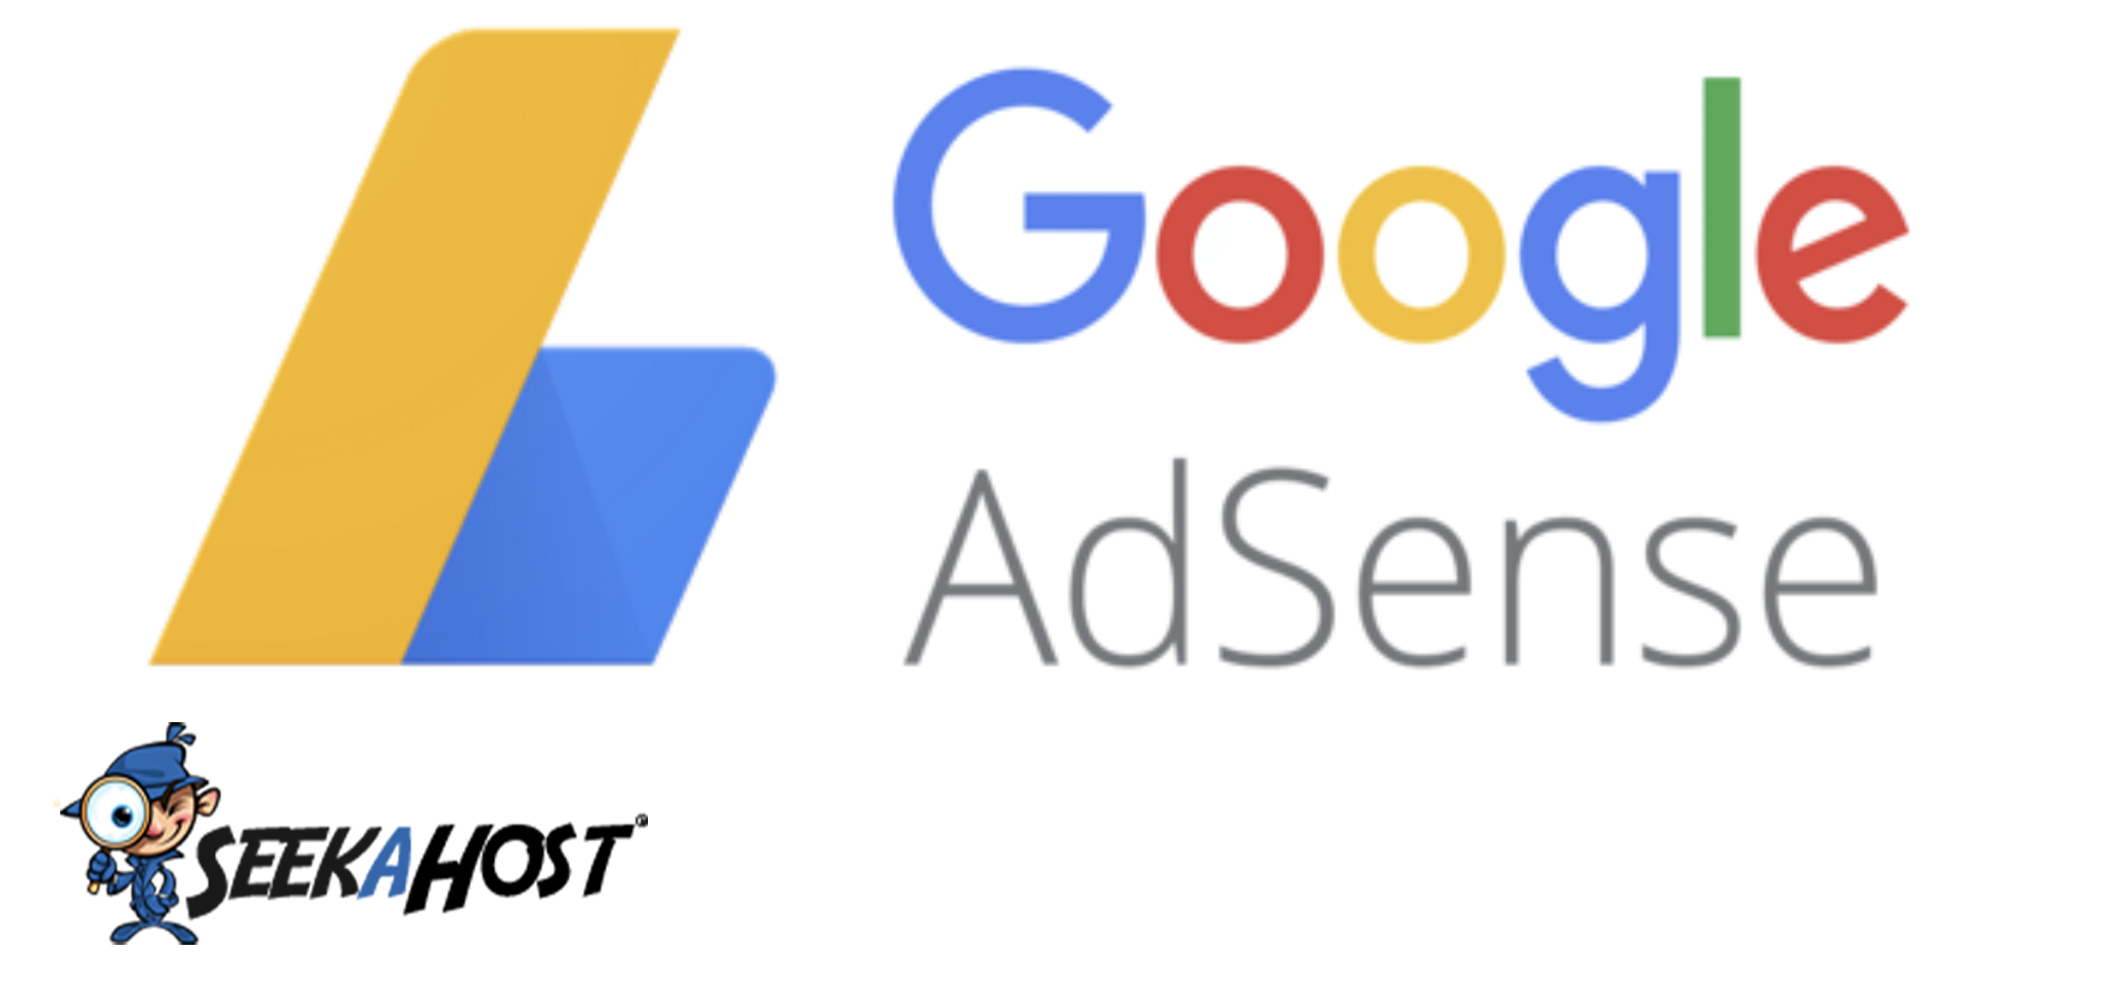 Google Adsense for bloggers